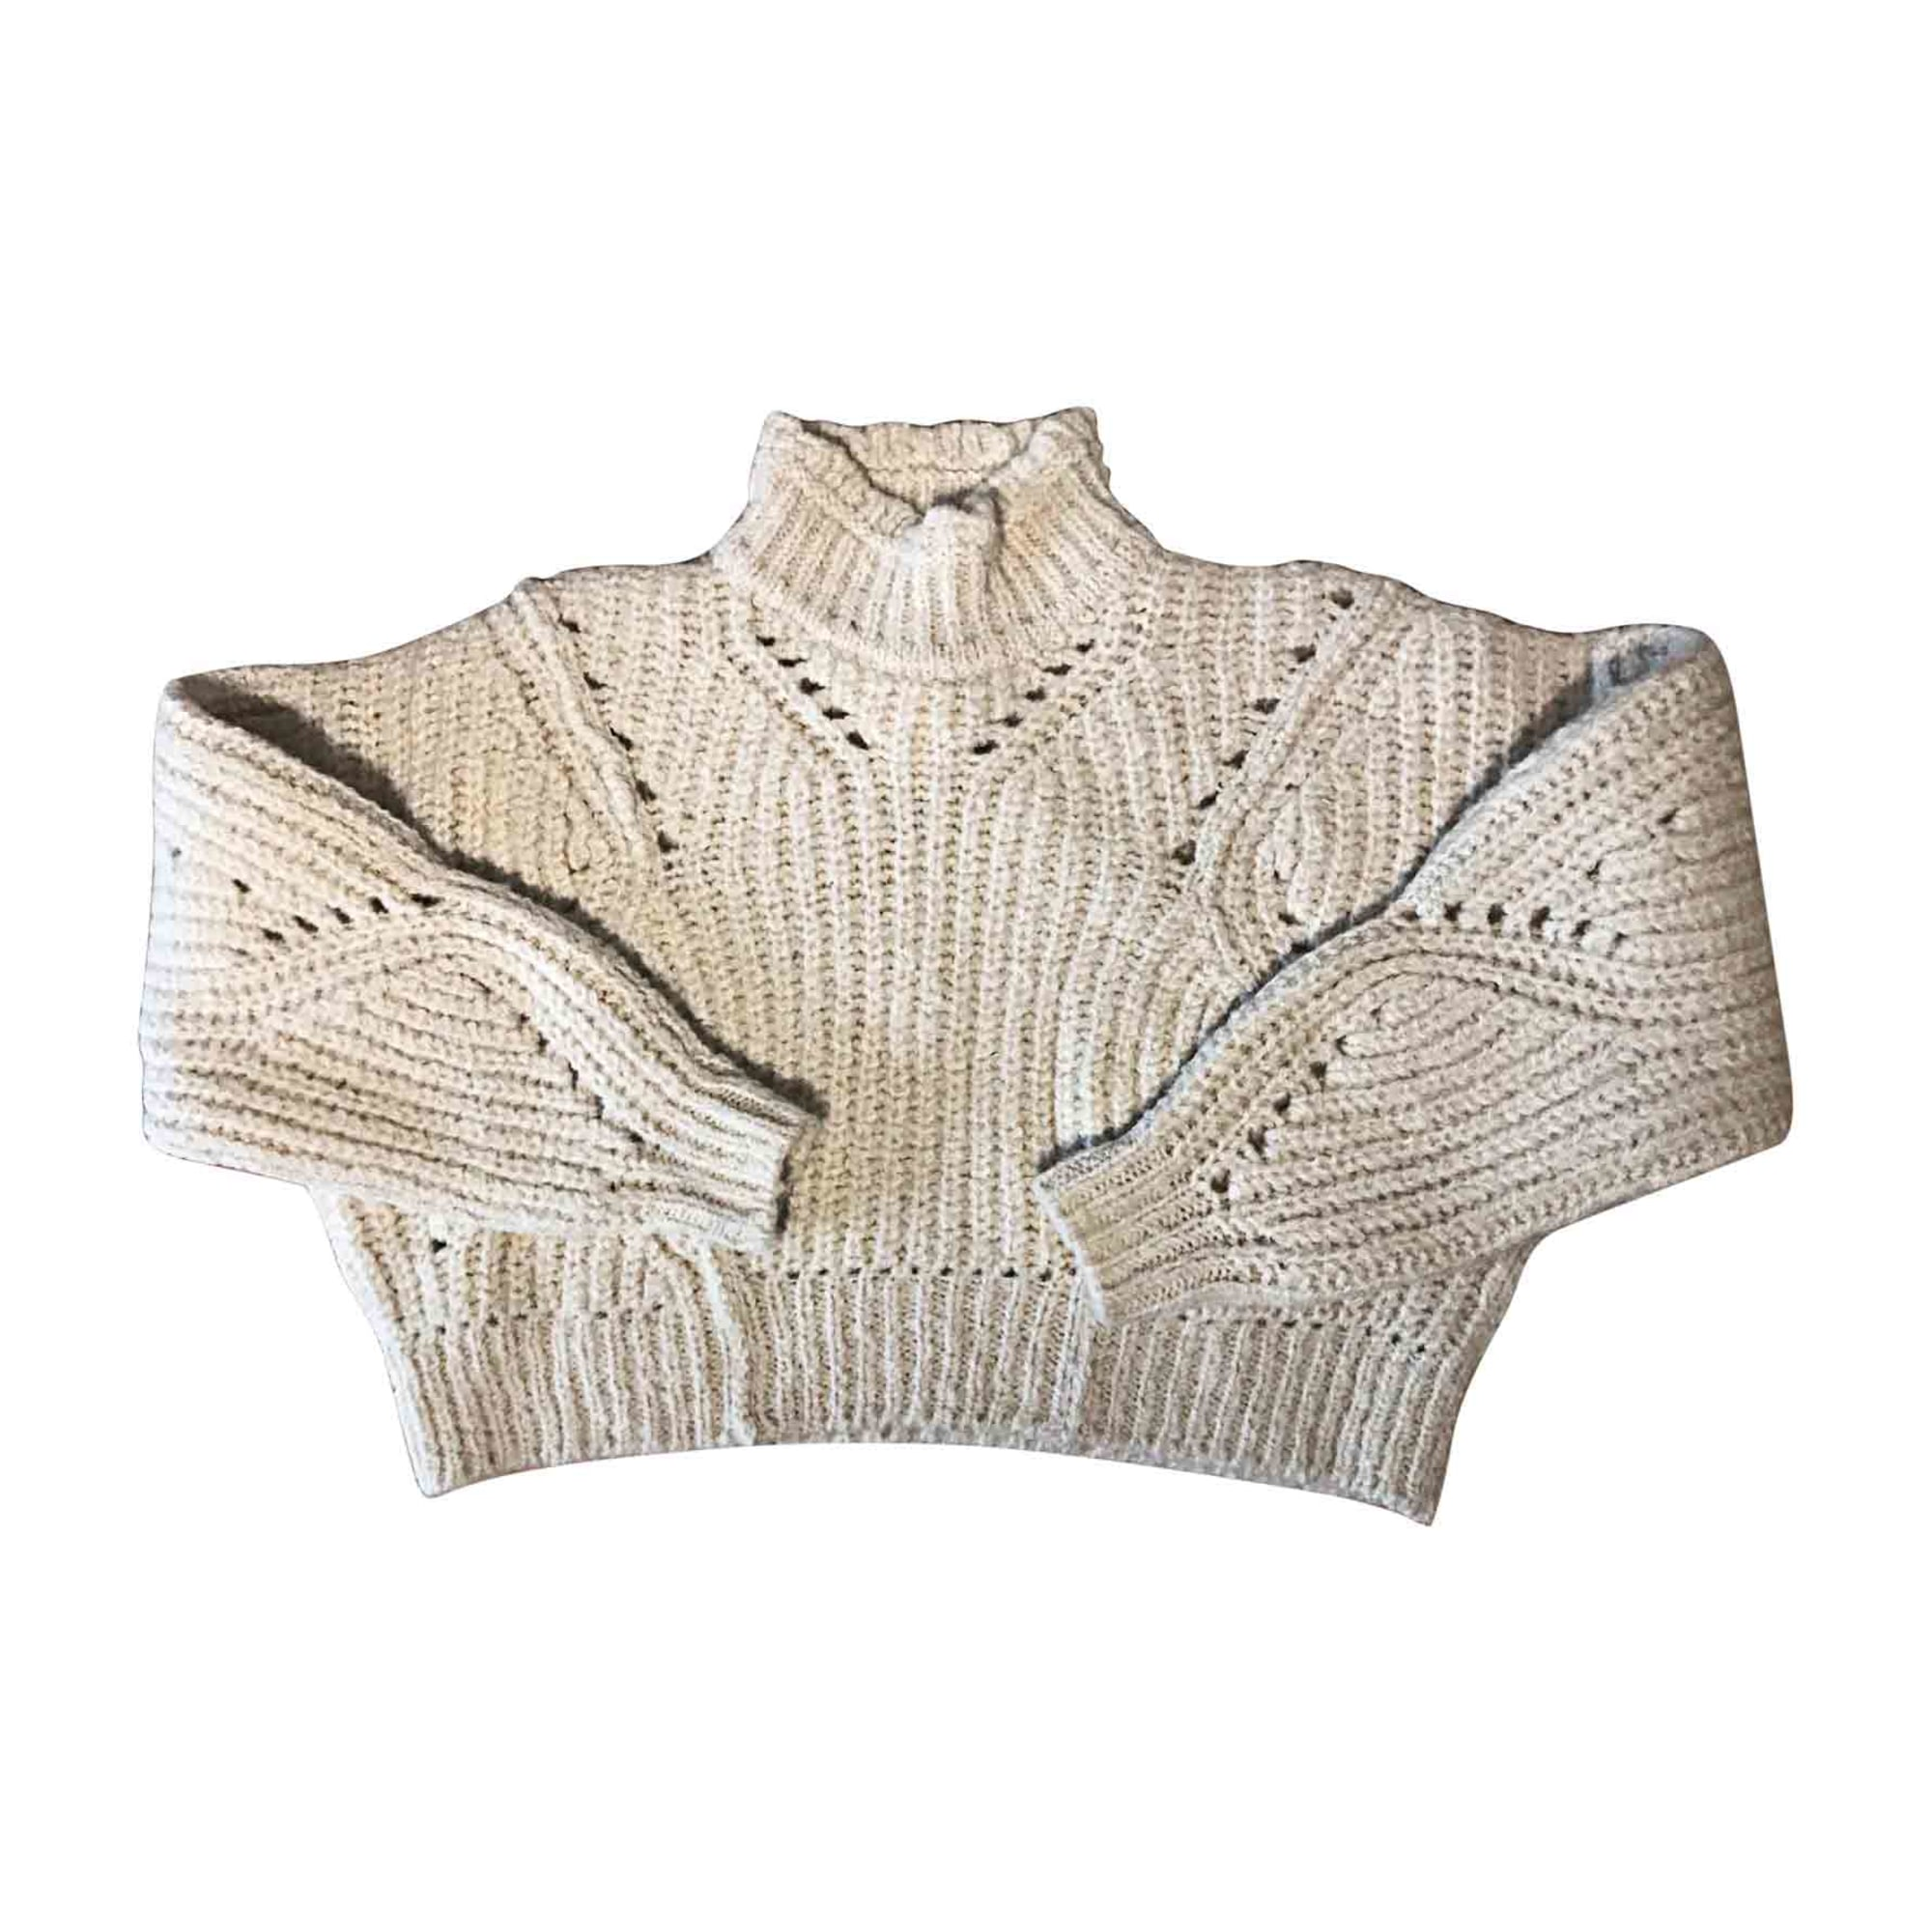 Sweater ISABEL MARANT White, off-white, ecru